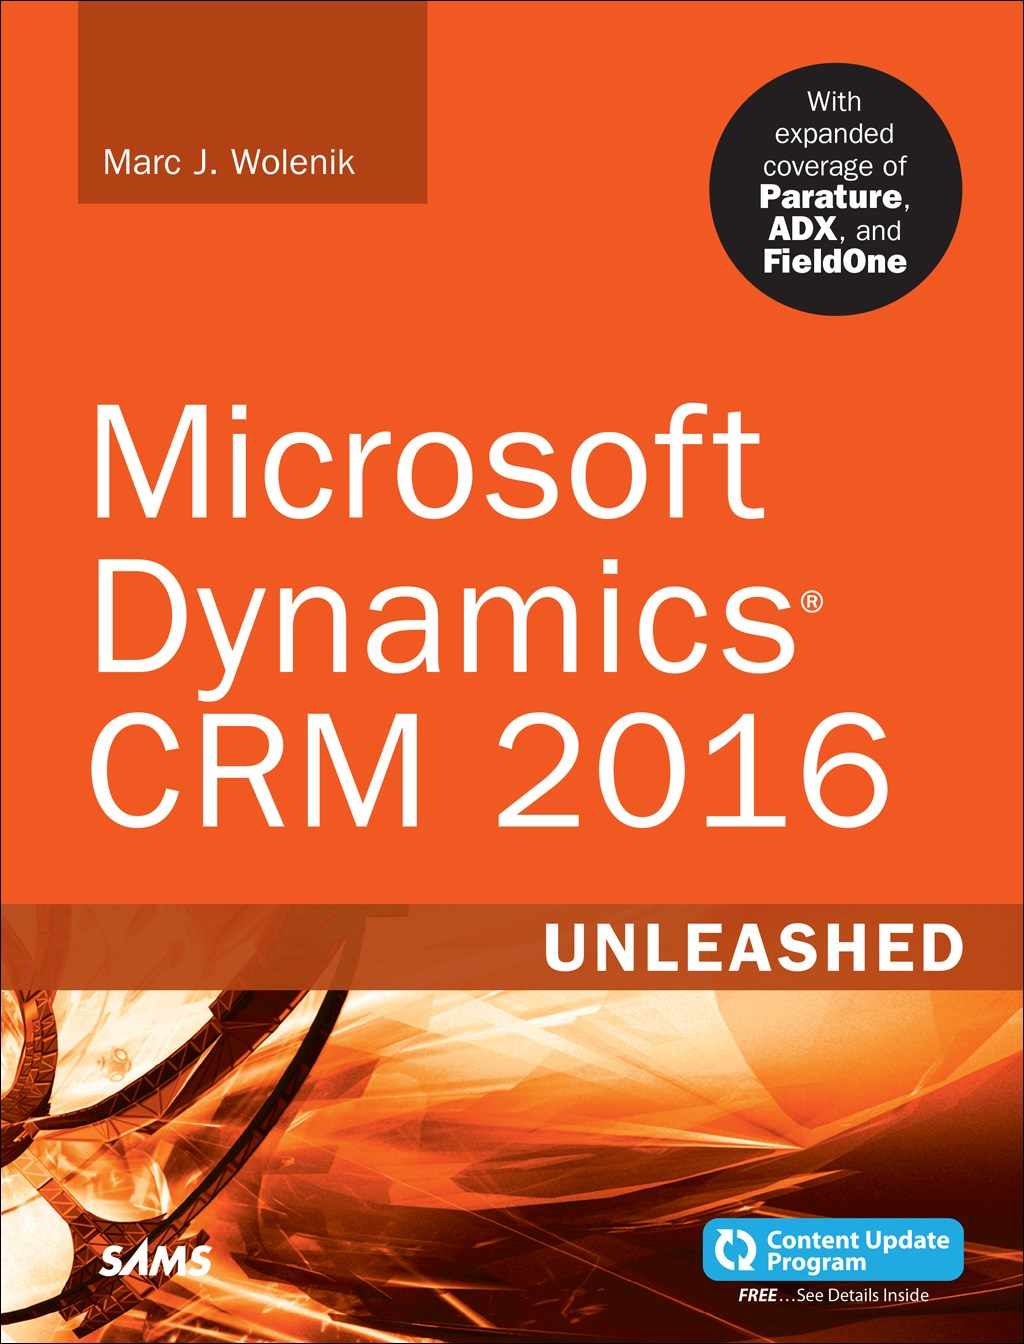 Microsoft Dynamics CRM 2016 Unleashed (includes Content Update Program): With Expanded Coverage of Parature, ADX and FieldOne